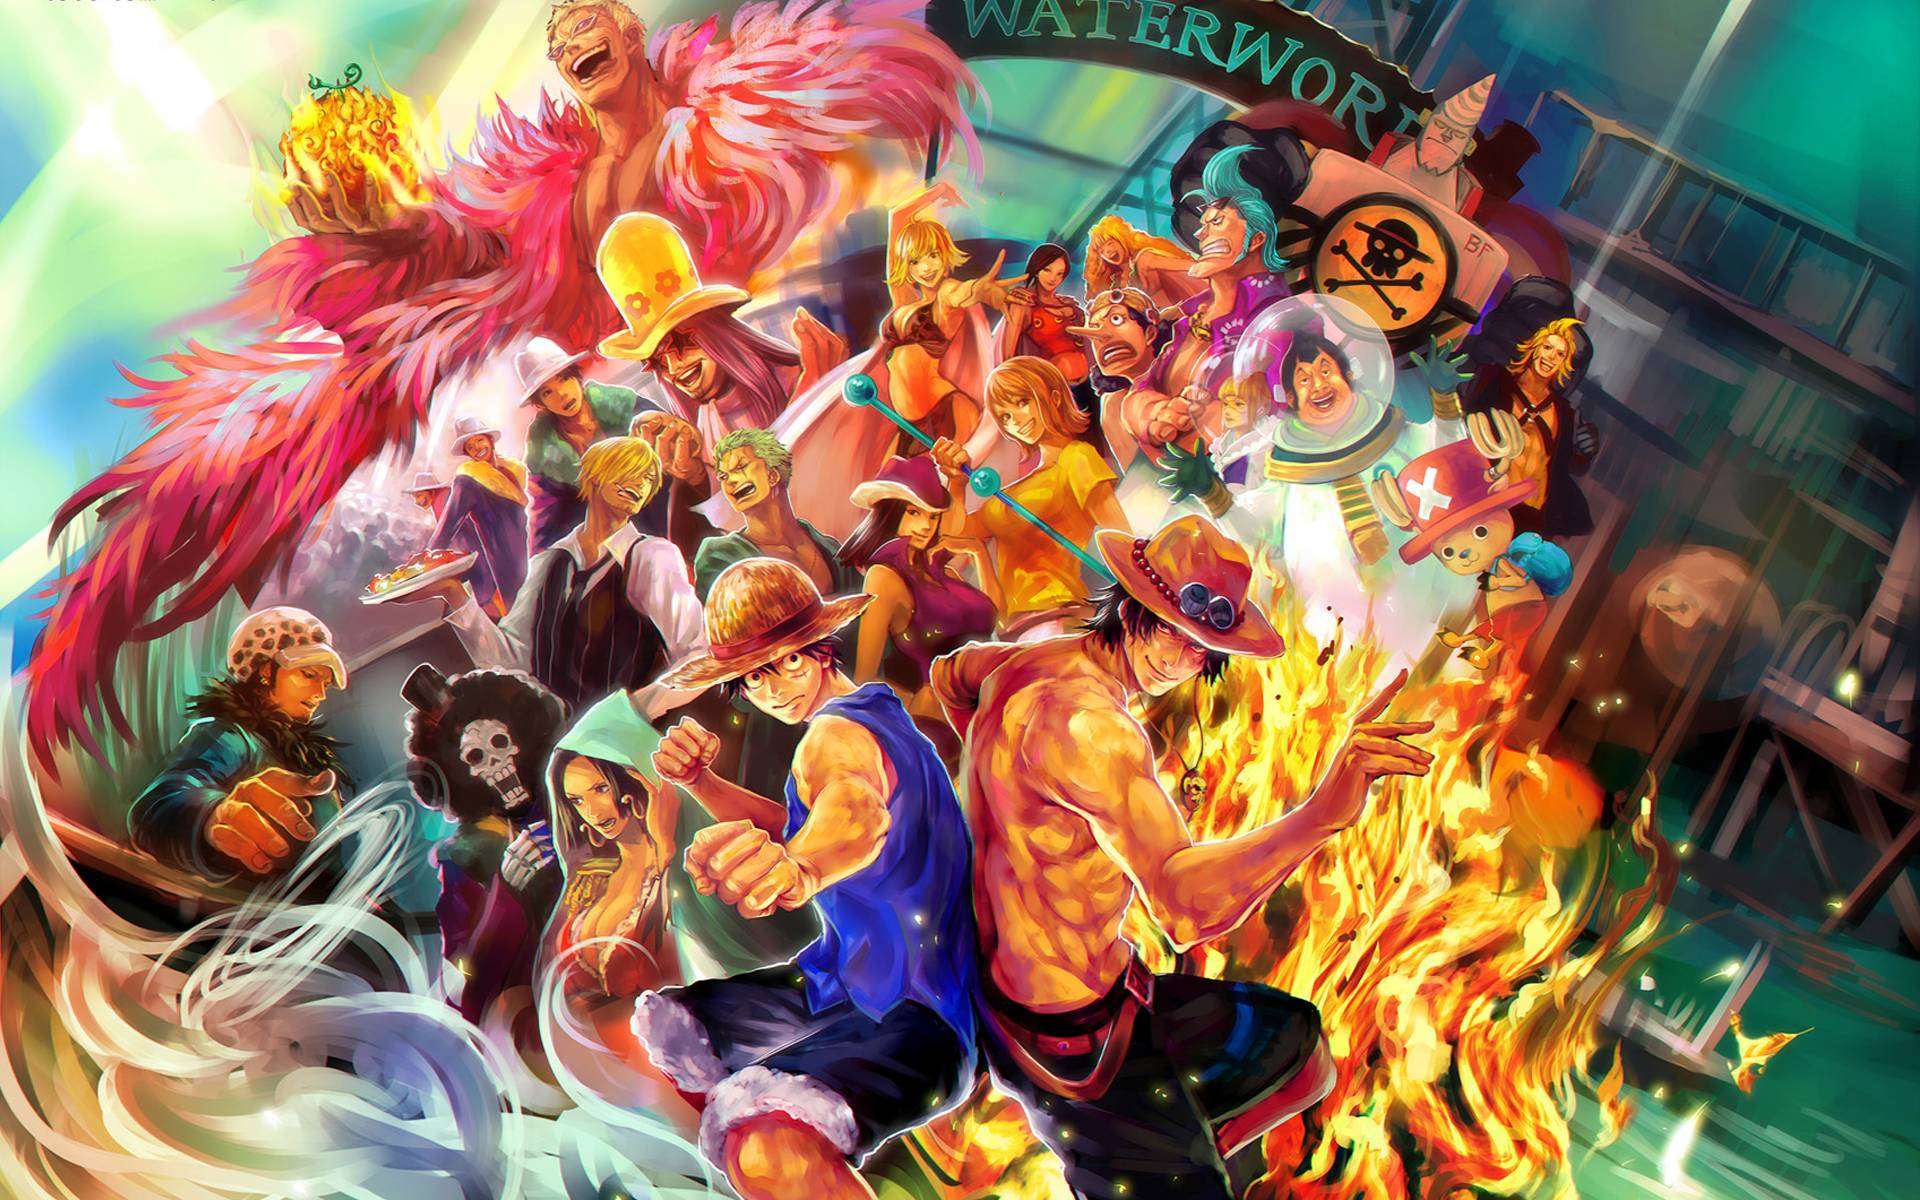 Wallpapers One Piece 2015 Nami And Law - Wallpaper Cave